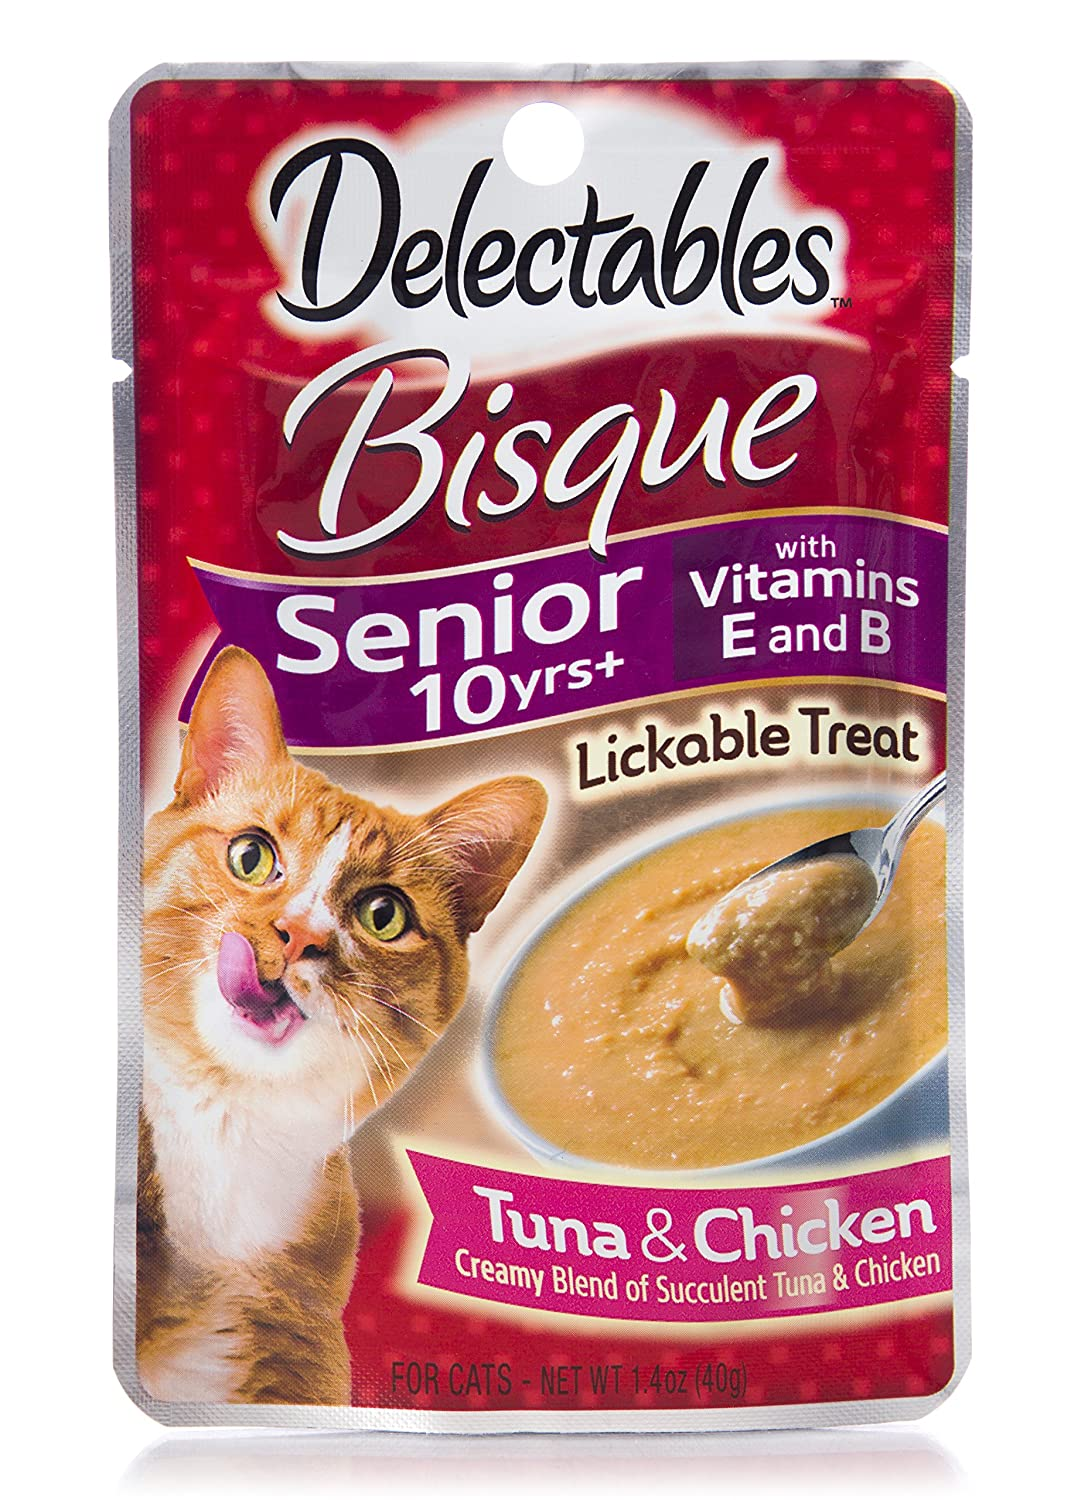 Delectables Senior Cat Treats.